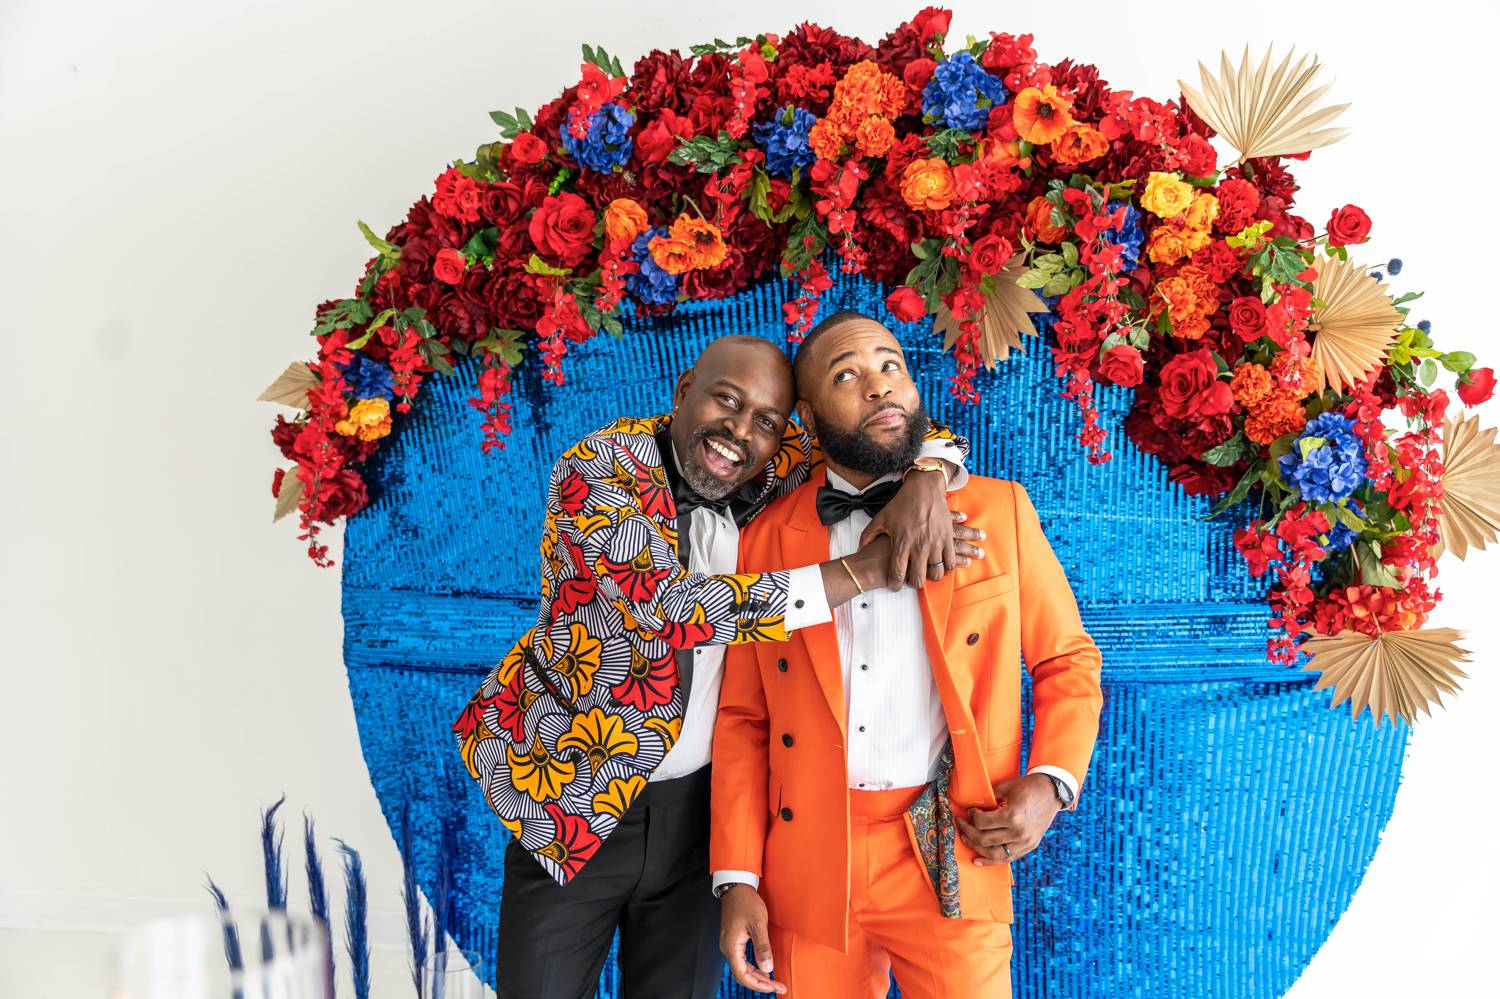 A groom in a colorful jacket wraps his arms around the shoulders of his husband who wears a bold orange suit